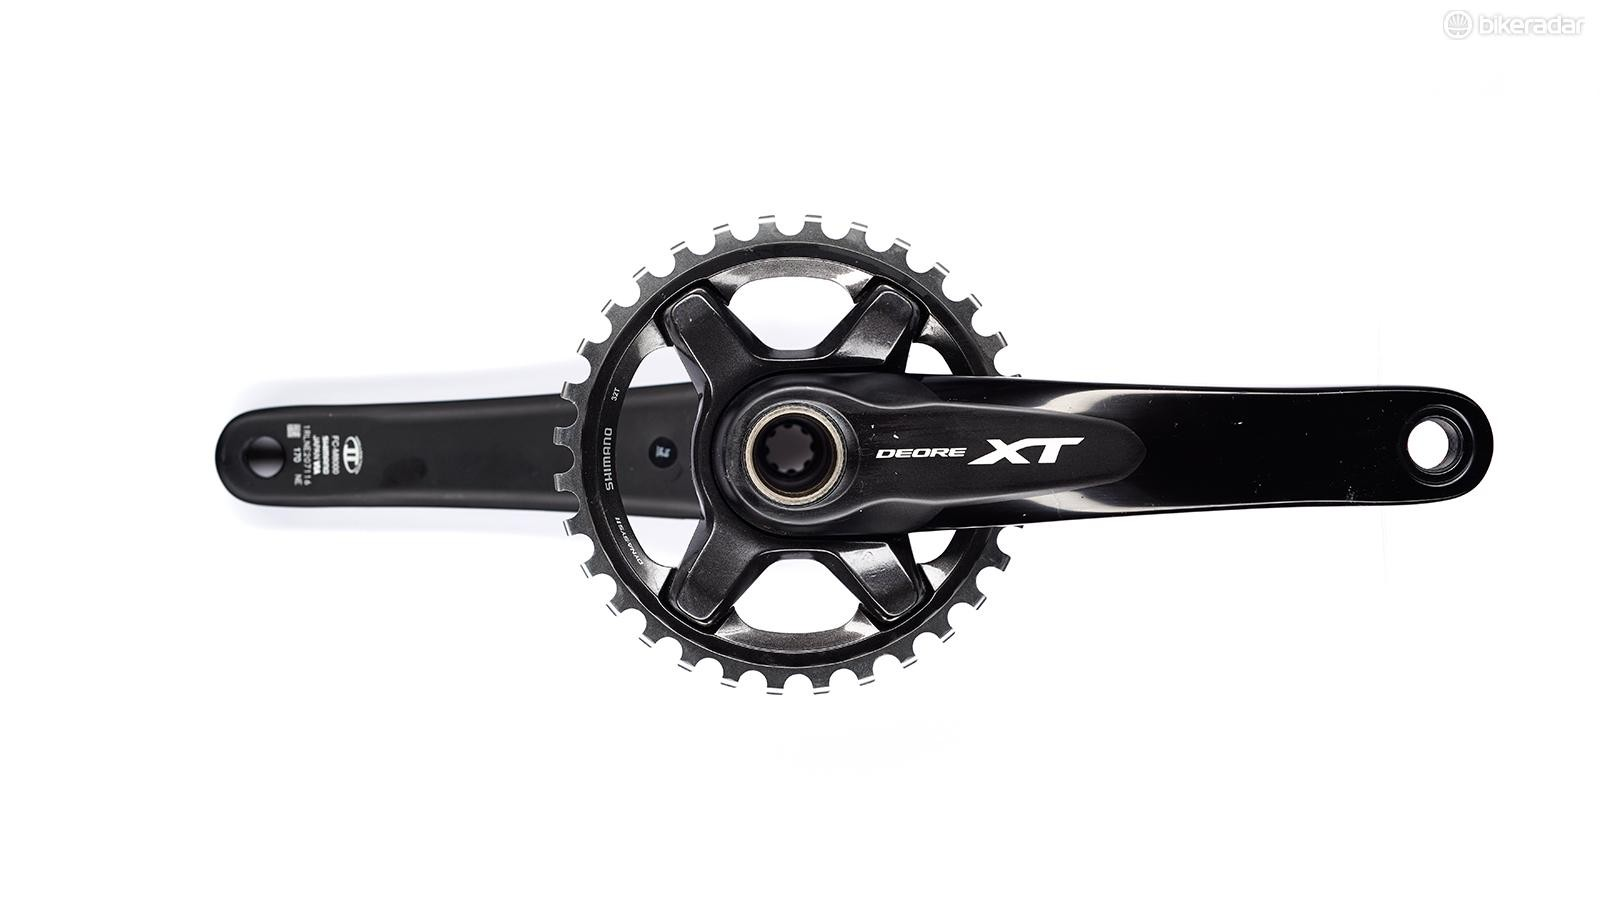 Shimano XT 8000 crankset: won't look like this for long